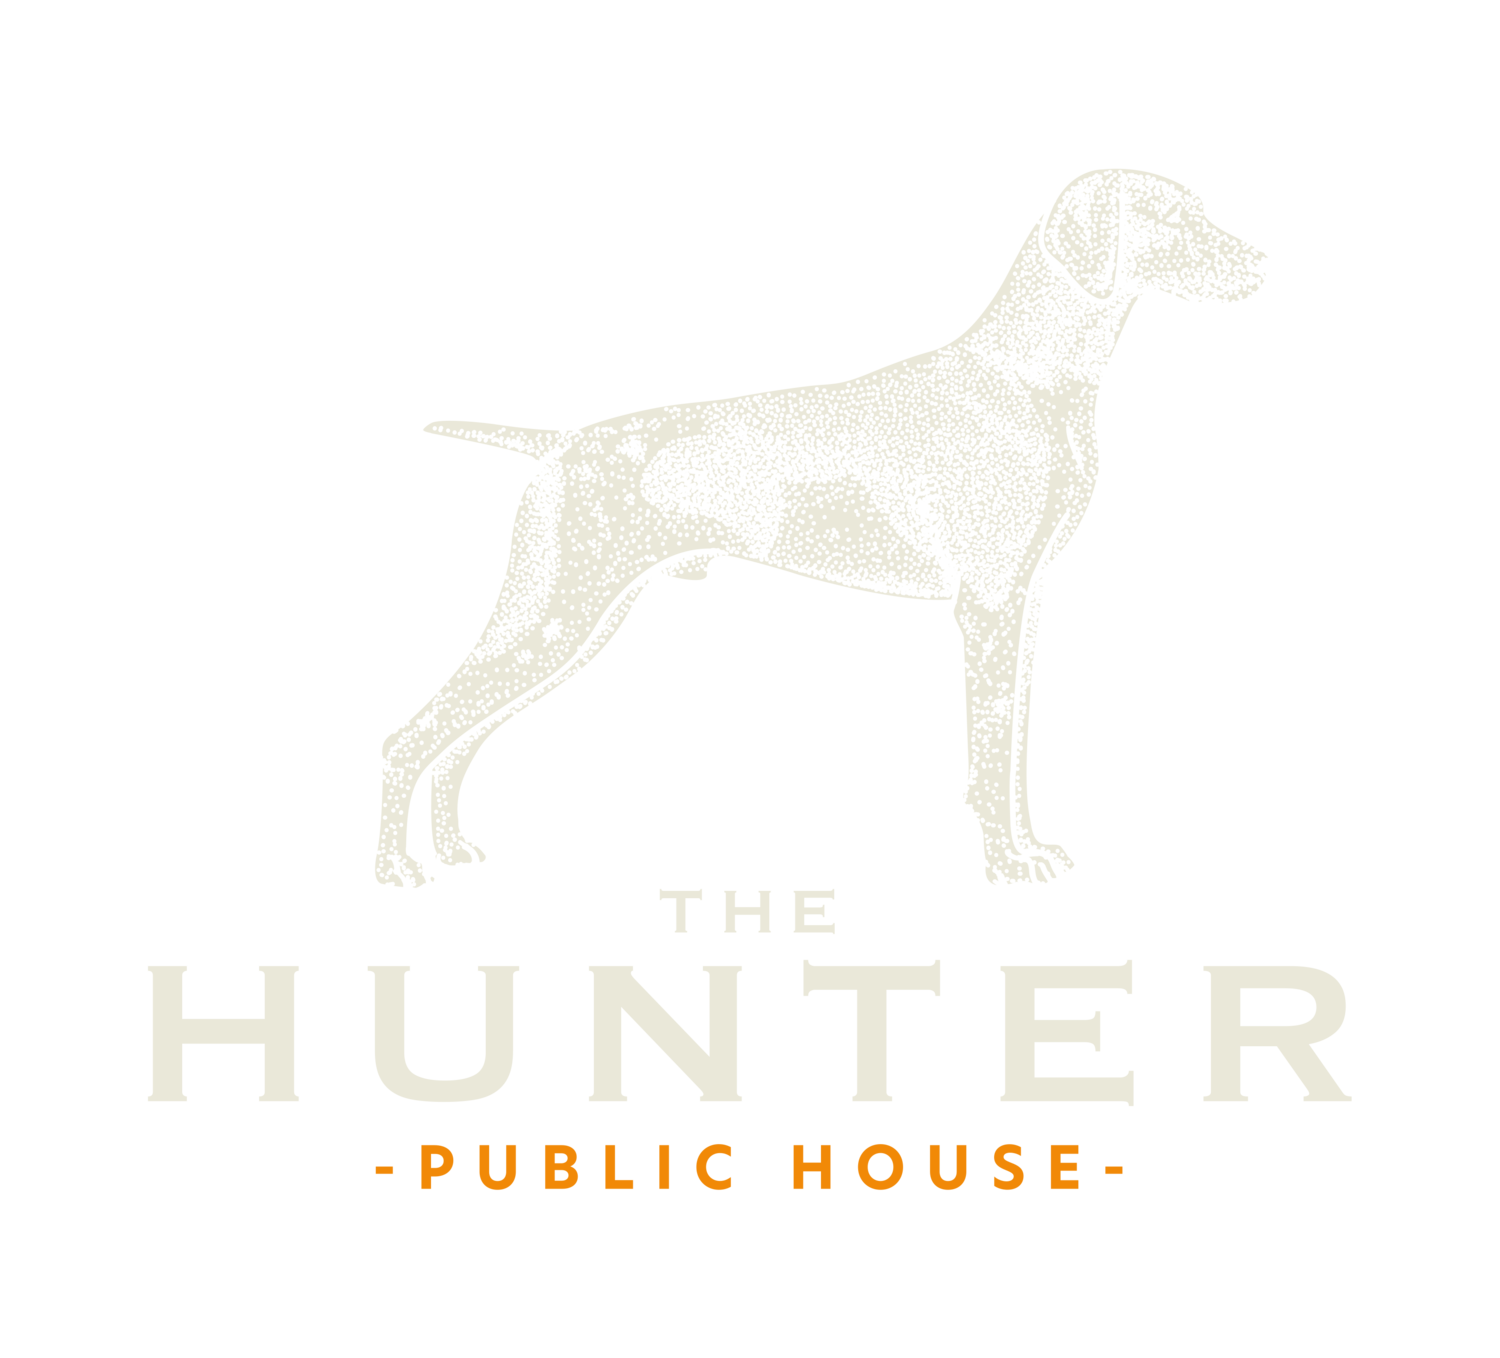 THE HUNTER PUBLIC HOUSE @ YOUR HOUSE